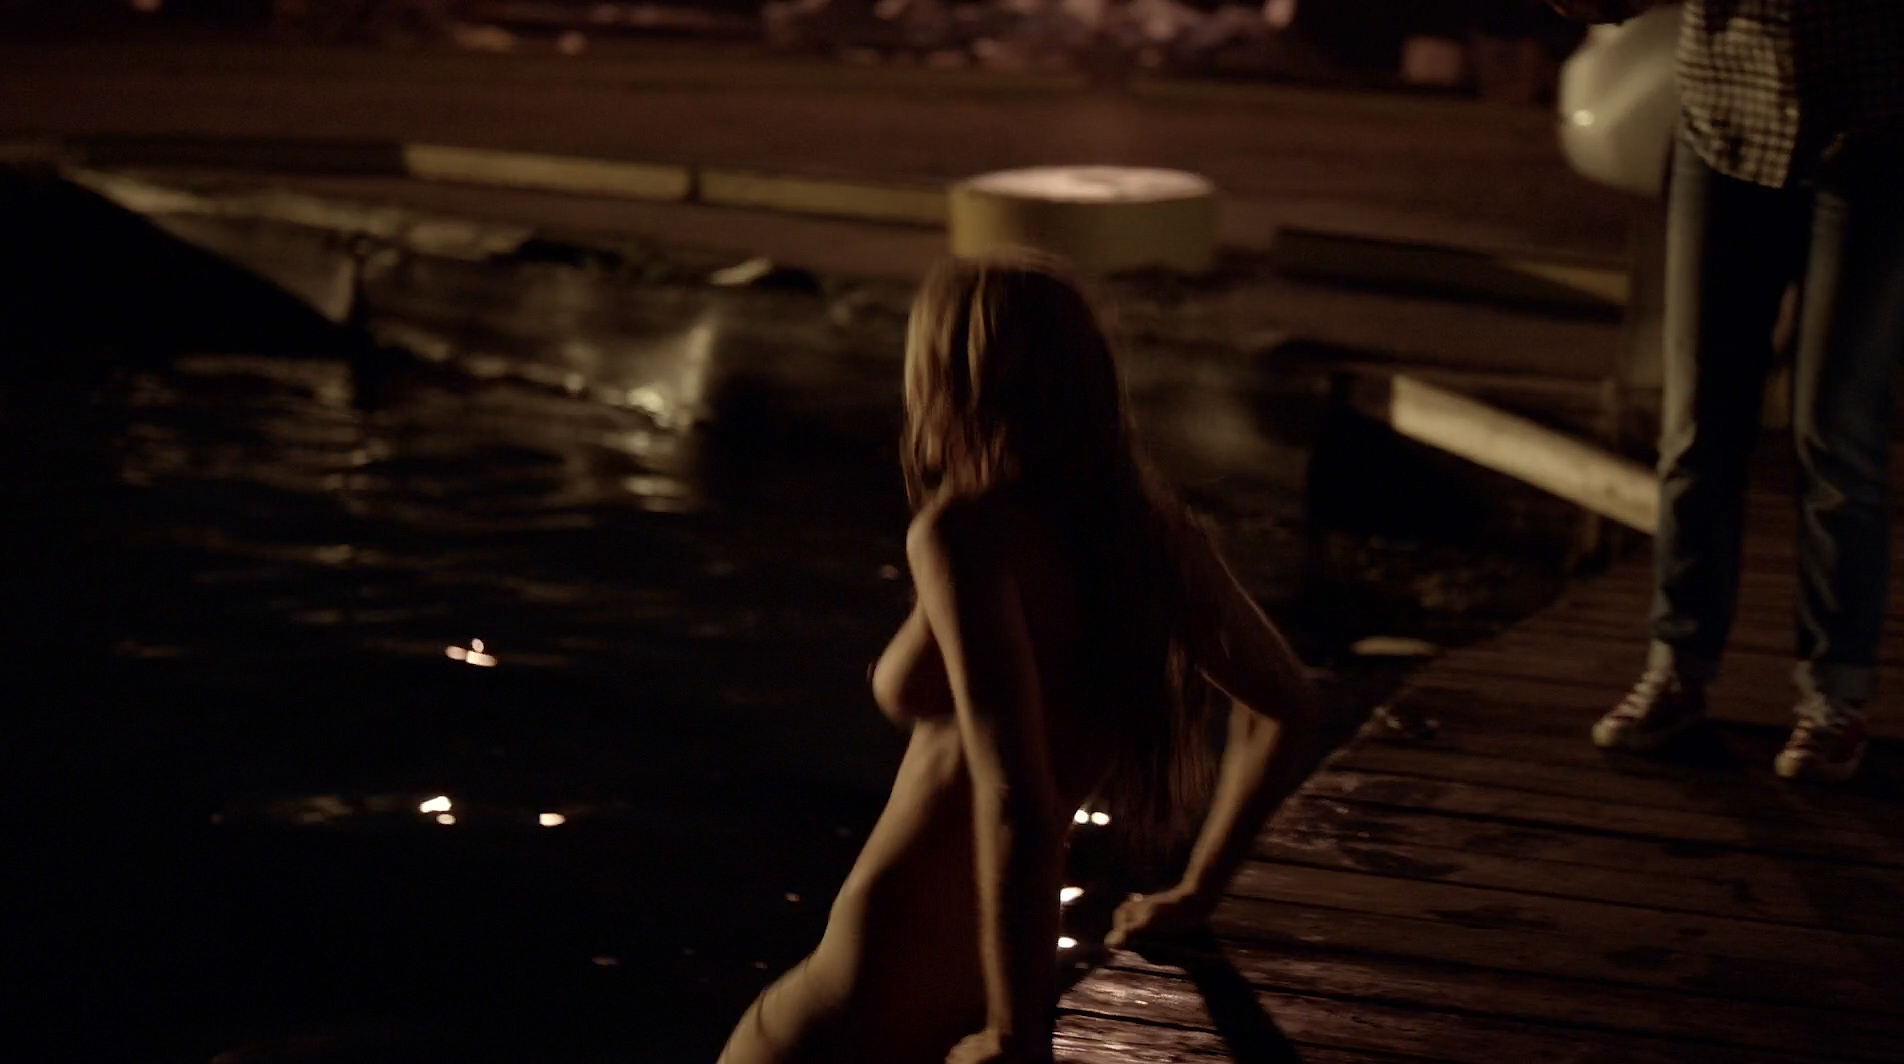 Jessica Sipos nude side boob, skinny dipping – Slasher s01e04 (2016) HD 1080p (3)